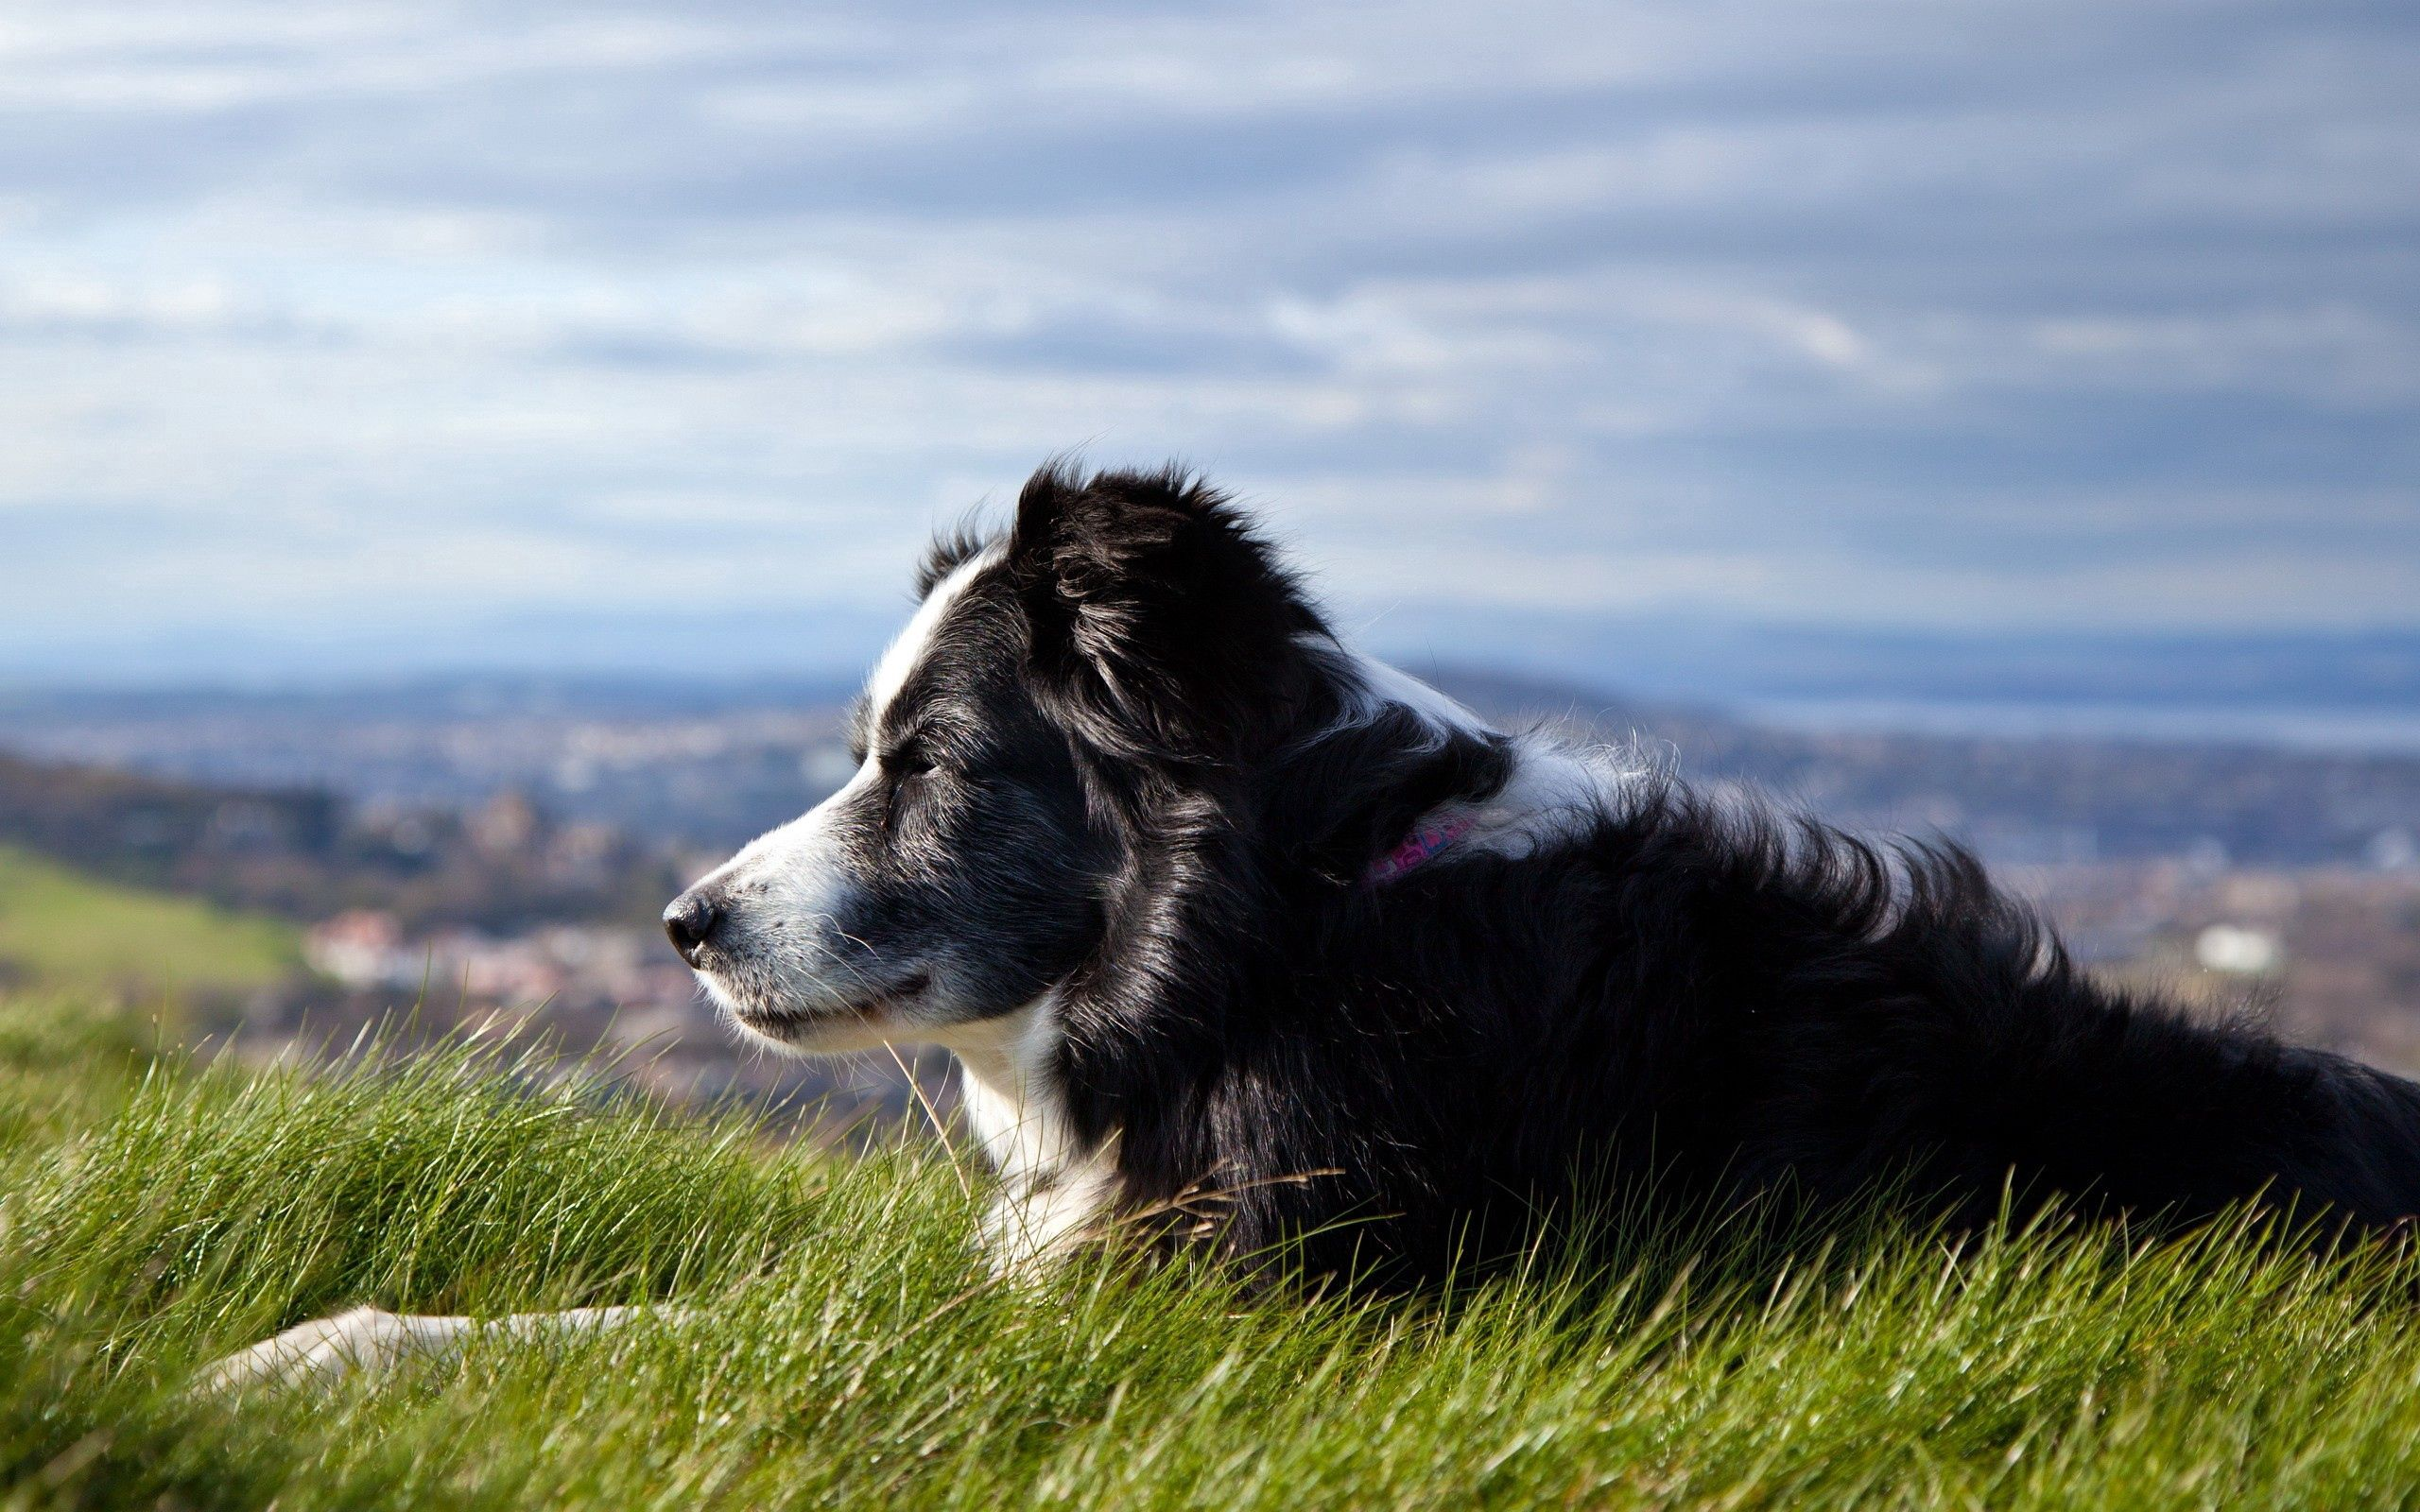 148908 download wallpaper Animals, Dog, Grass, To Lie Down, Lie, Expectation, Waiting screensavers and pictures for free